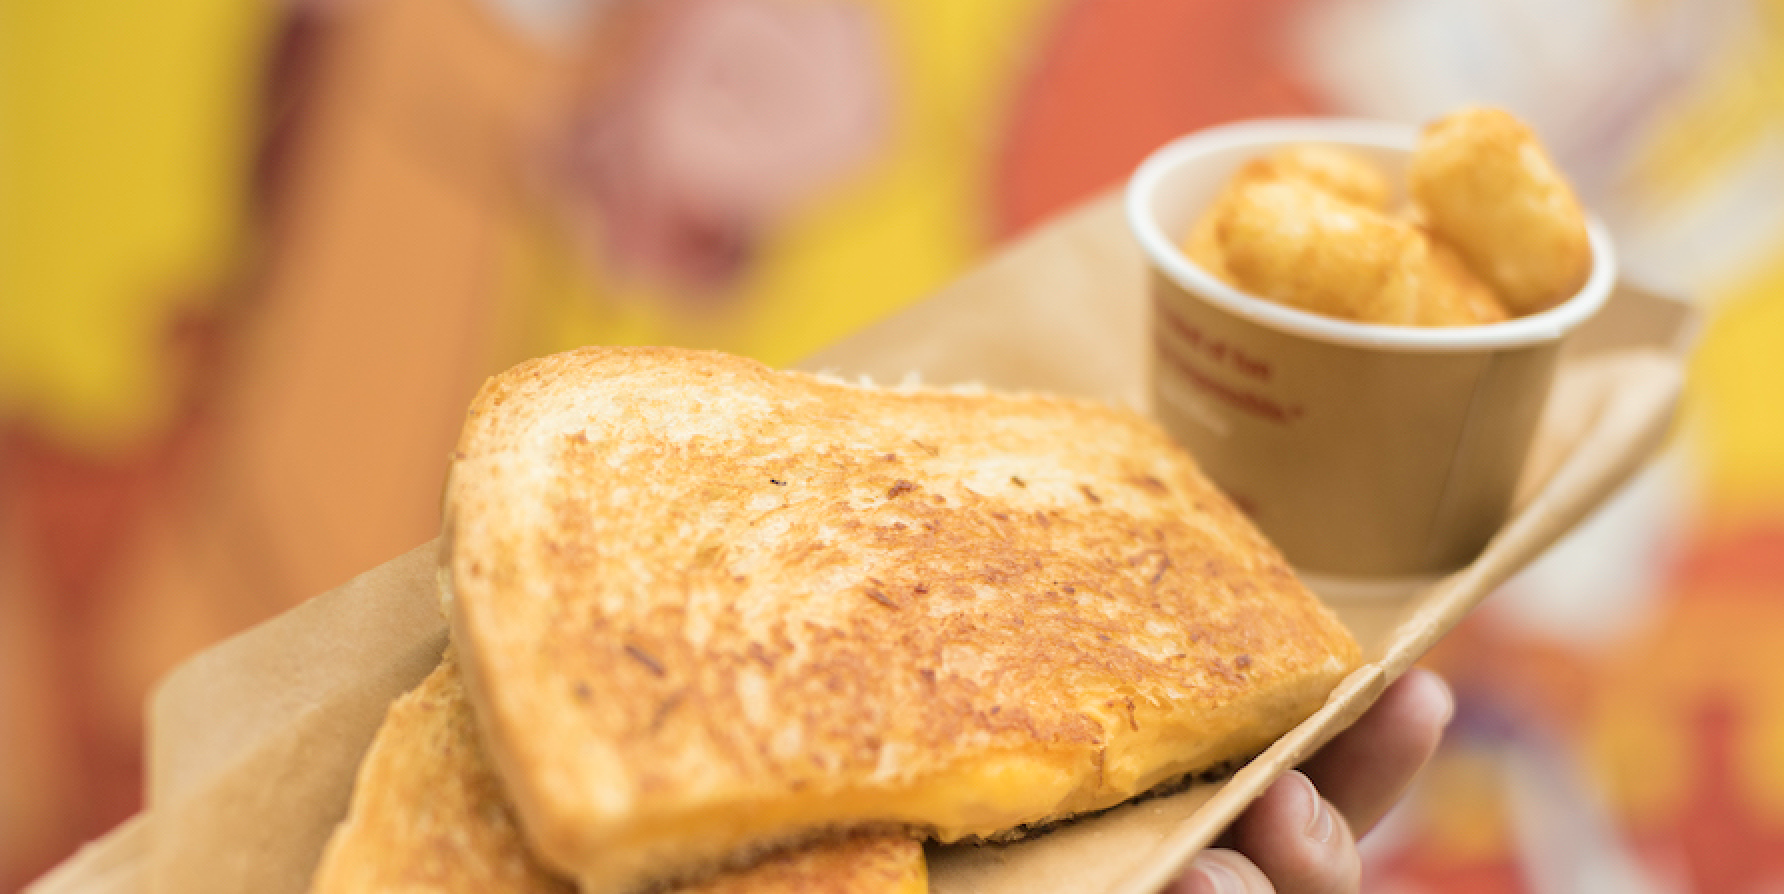 Disney Shared Its 3-Cheese Grilled Cheese Recipe